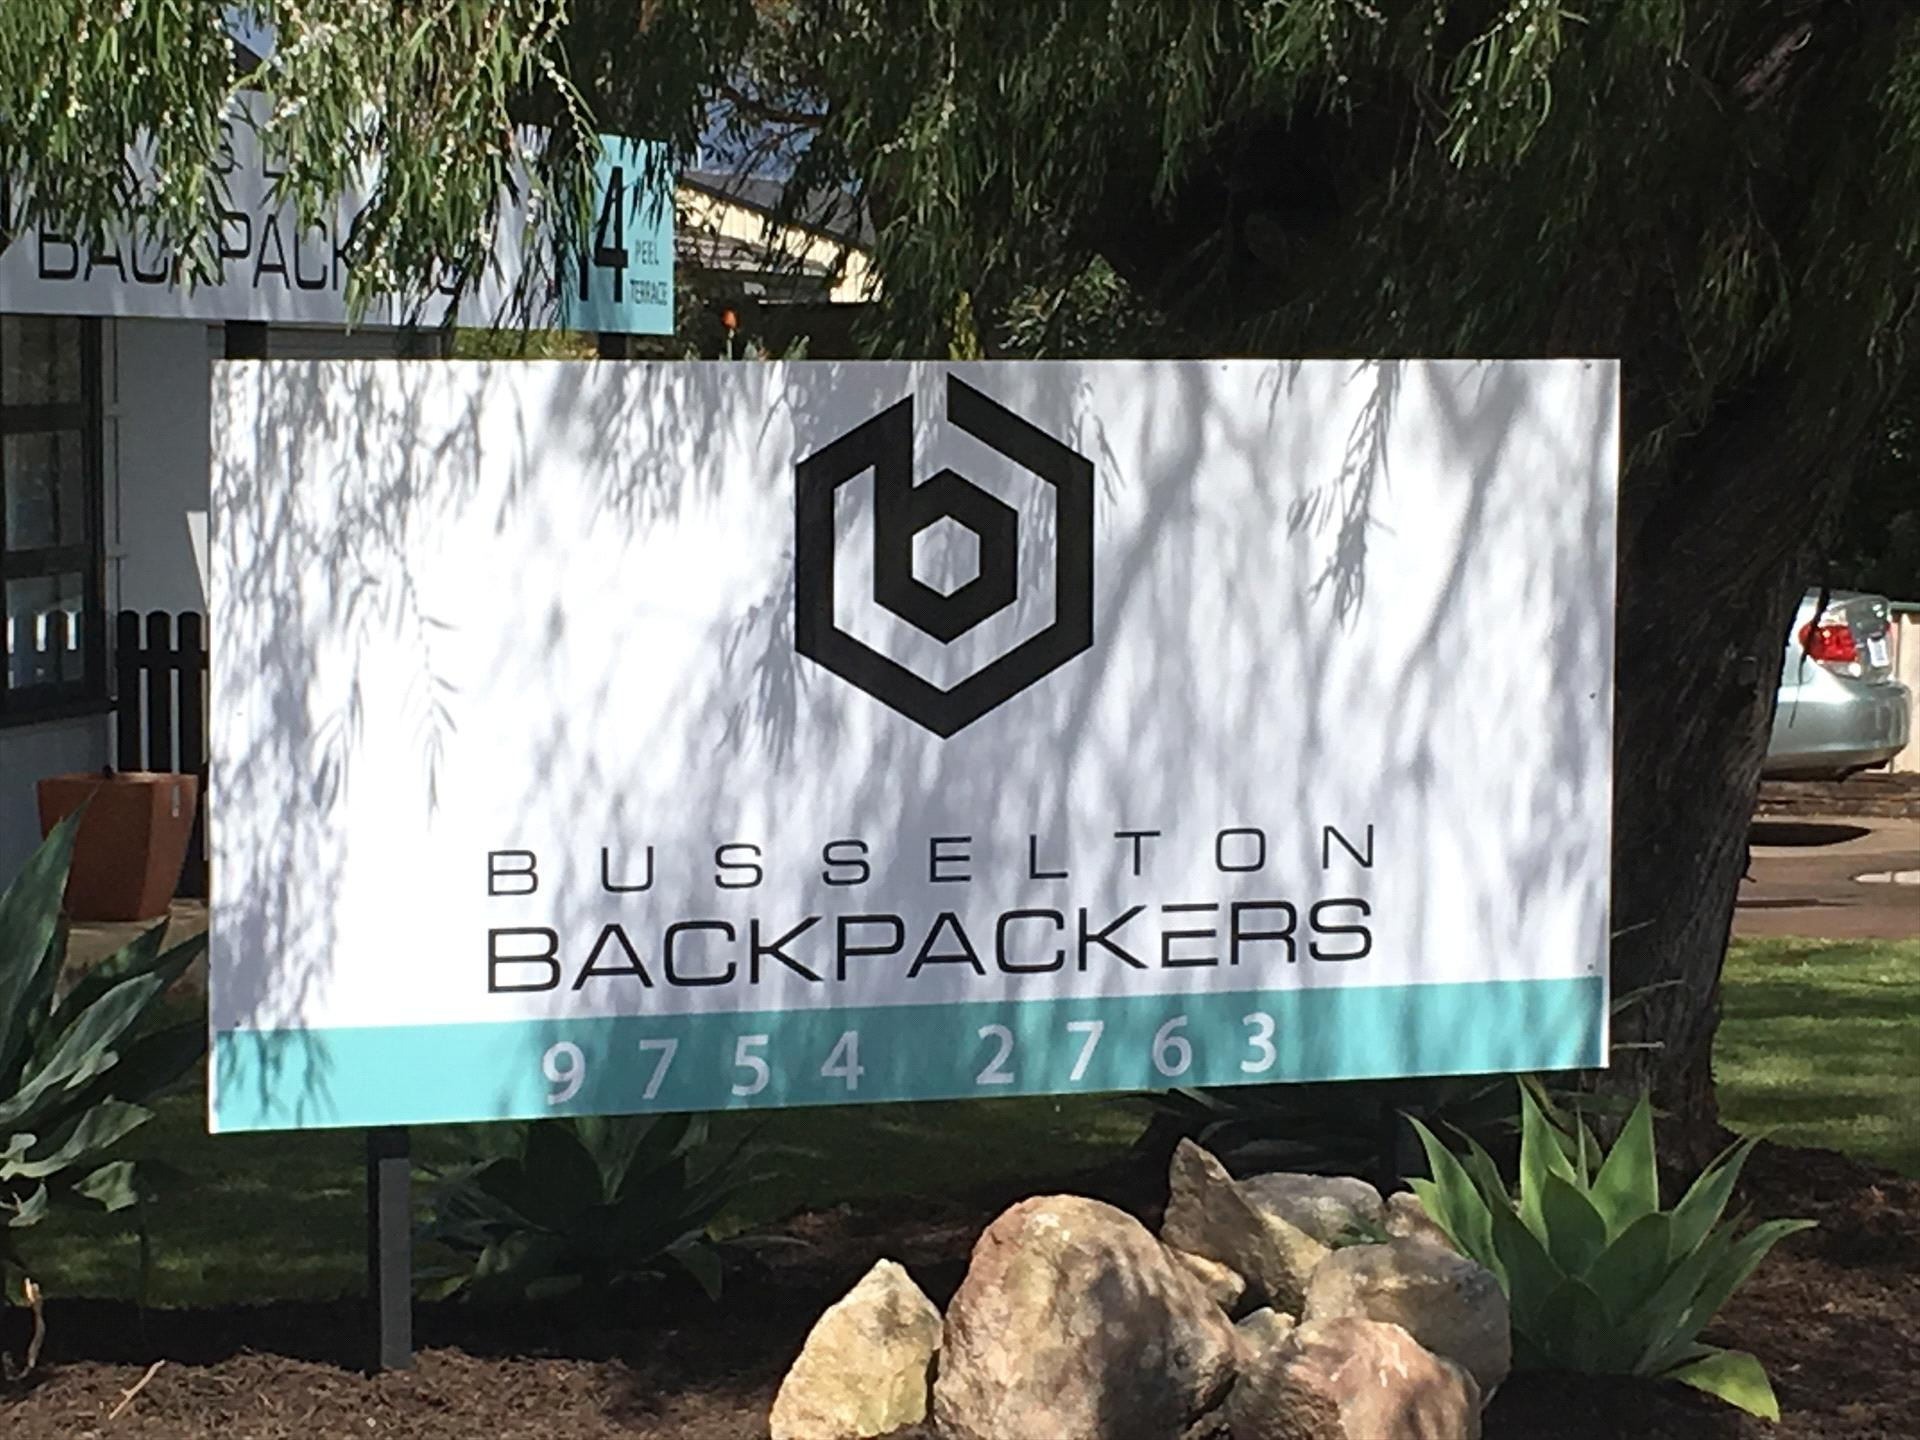 Busselton Backpackers logo